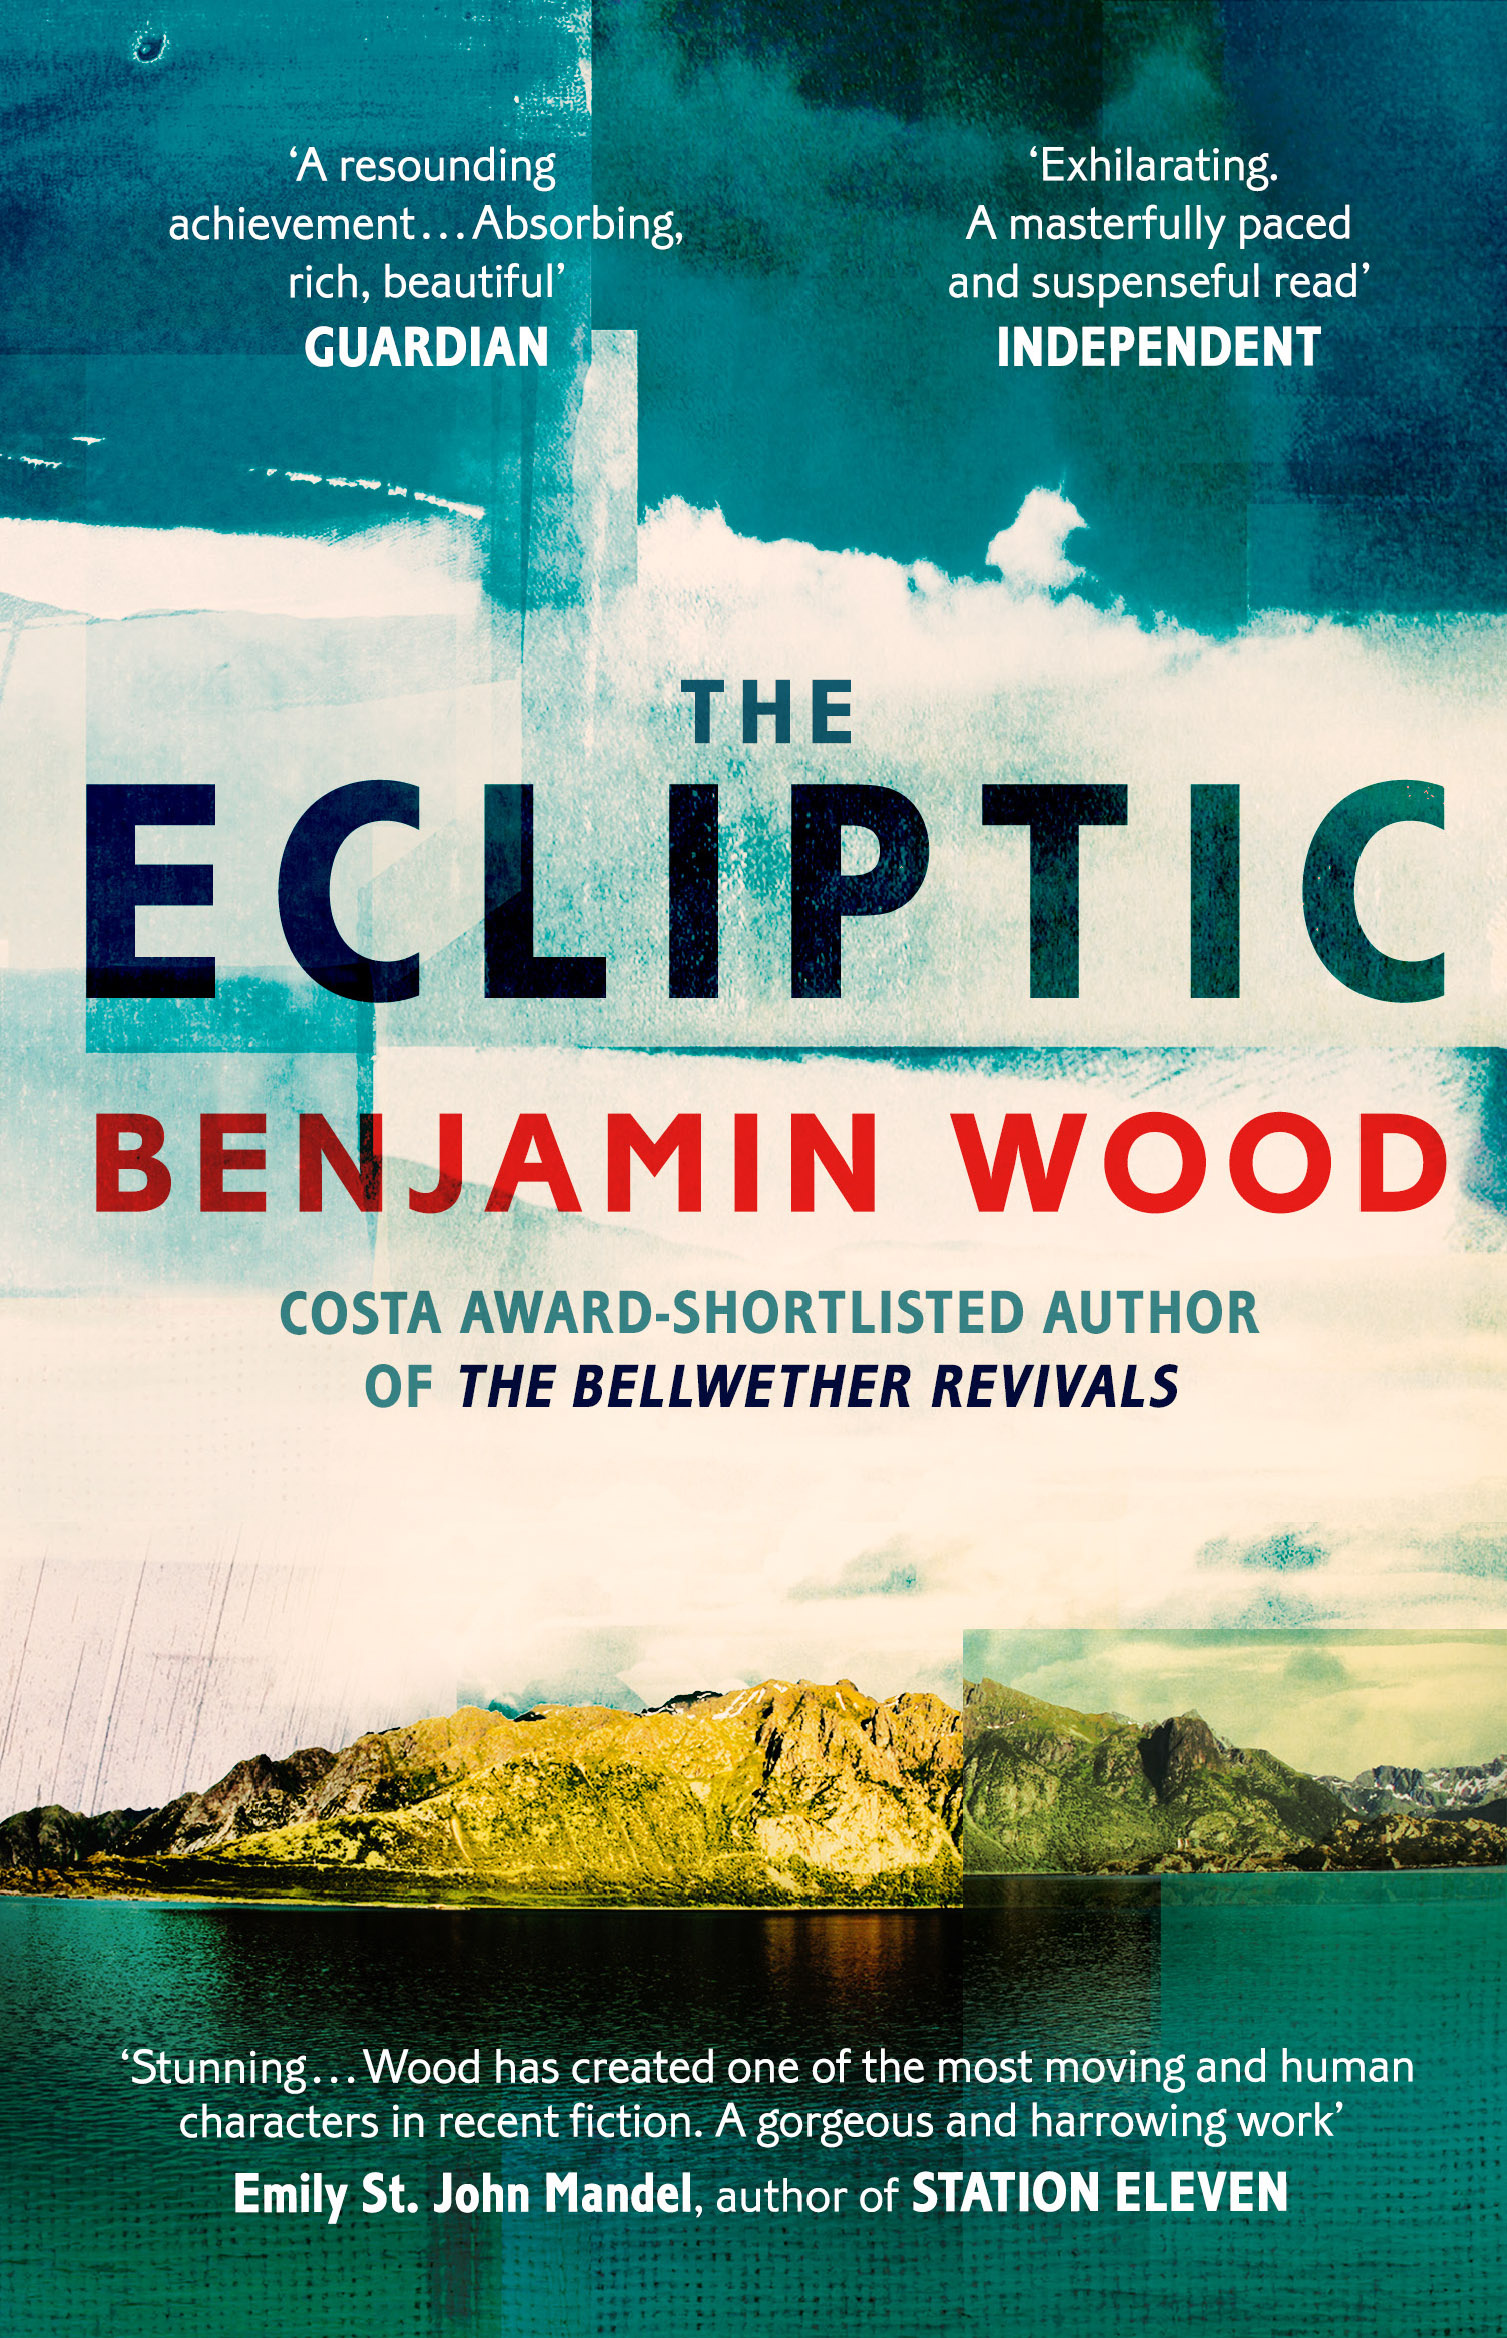 The Ecliptic by Benjamin Wood is published by Scribner